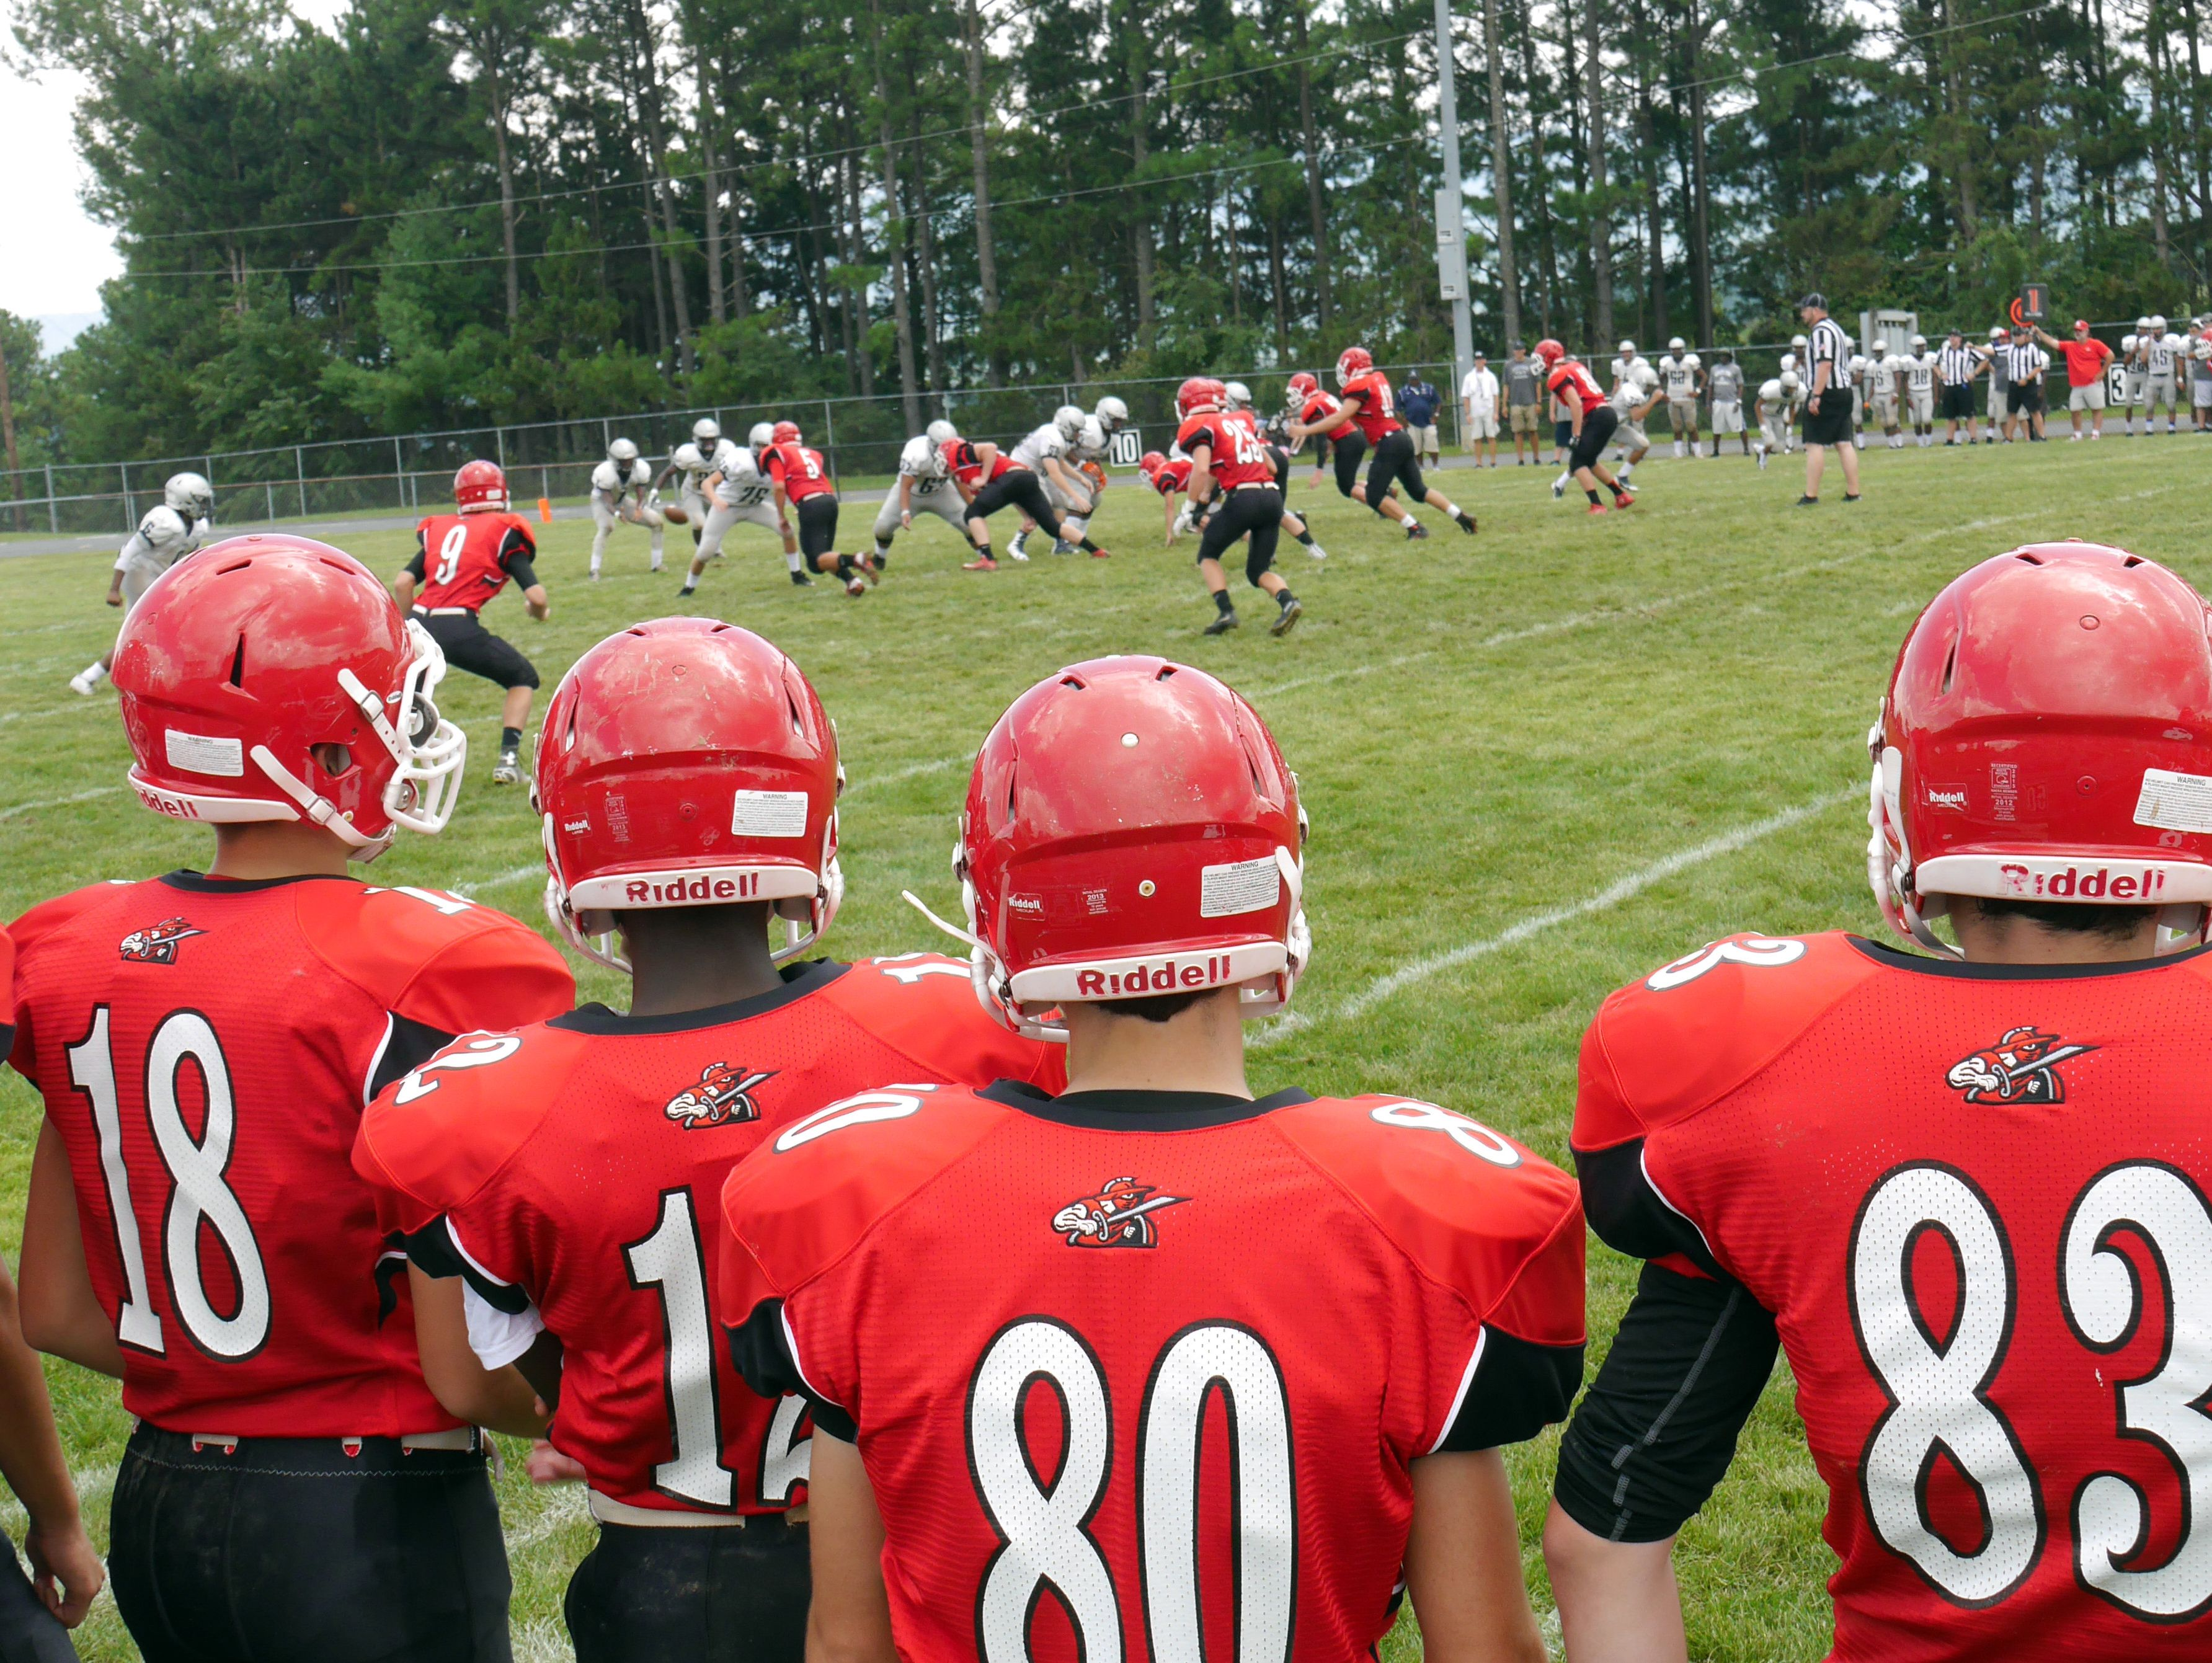 Riverheads players watch from the sidelines during their scrimmage against Appomattox High School in the Riverheads High School 2016 football jamboree on Aug. 20, 2016.